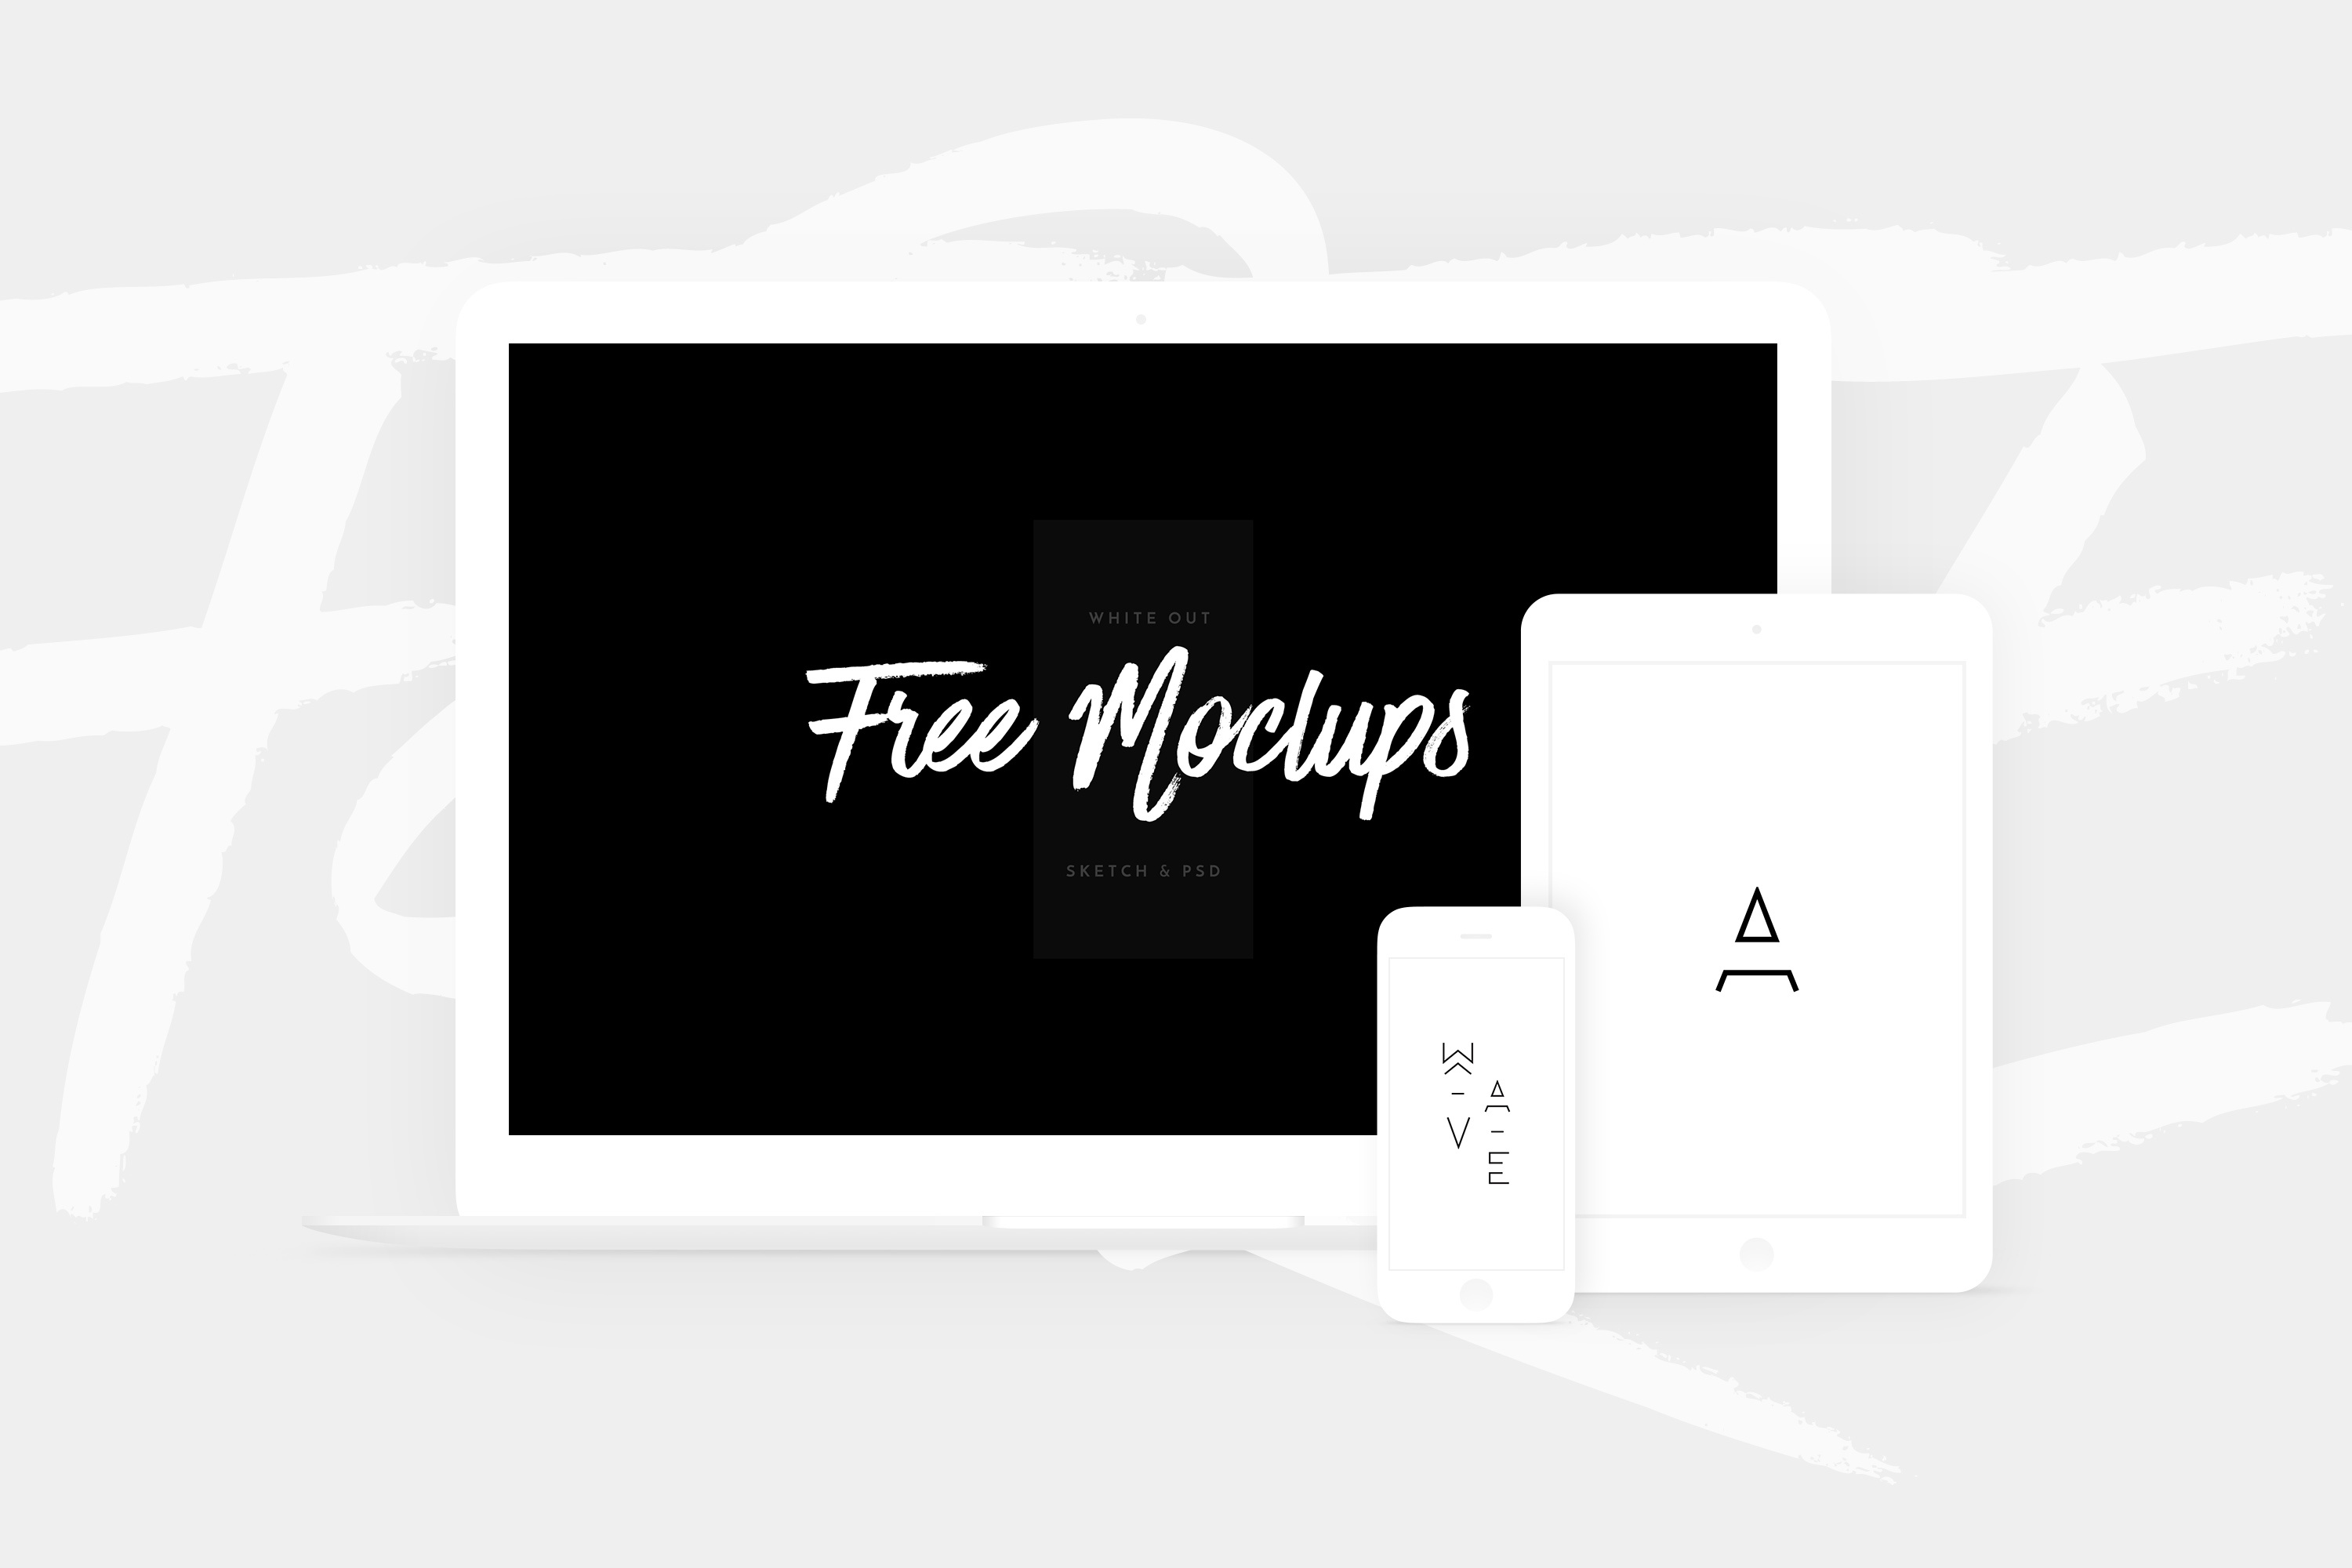 Devices mockups free1